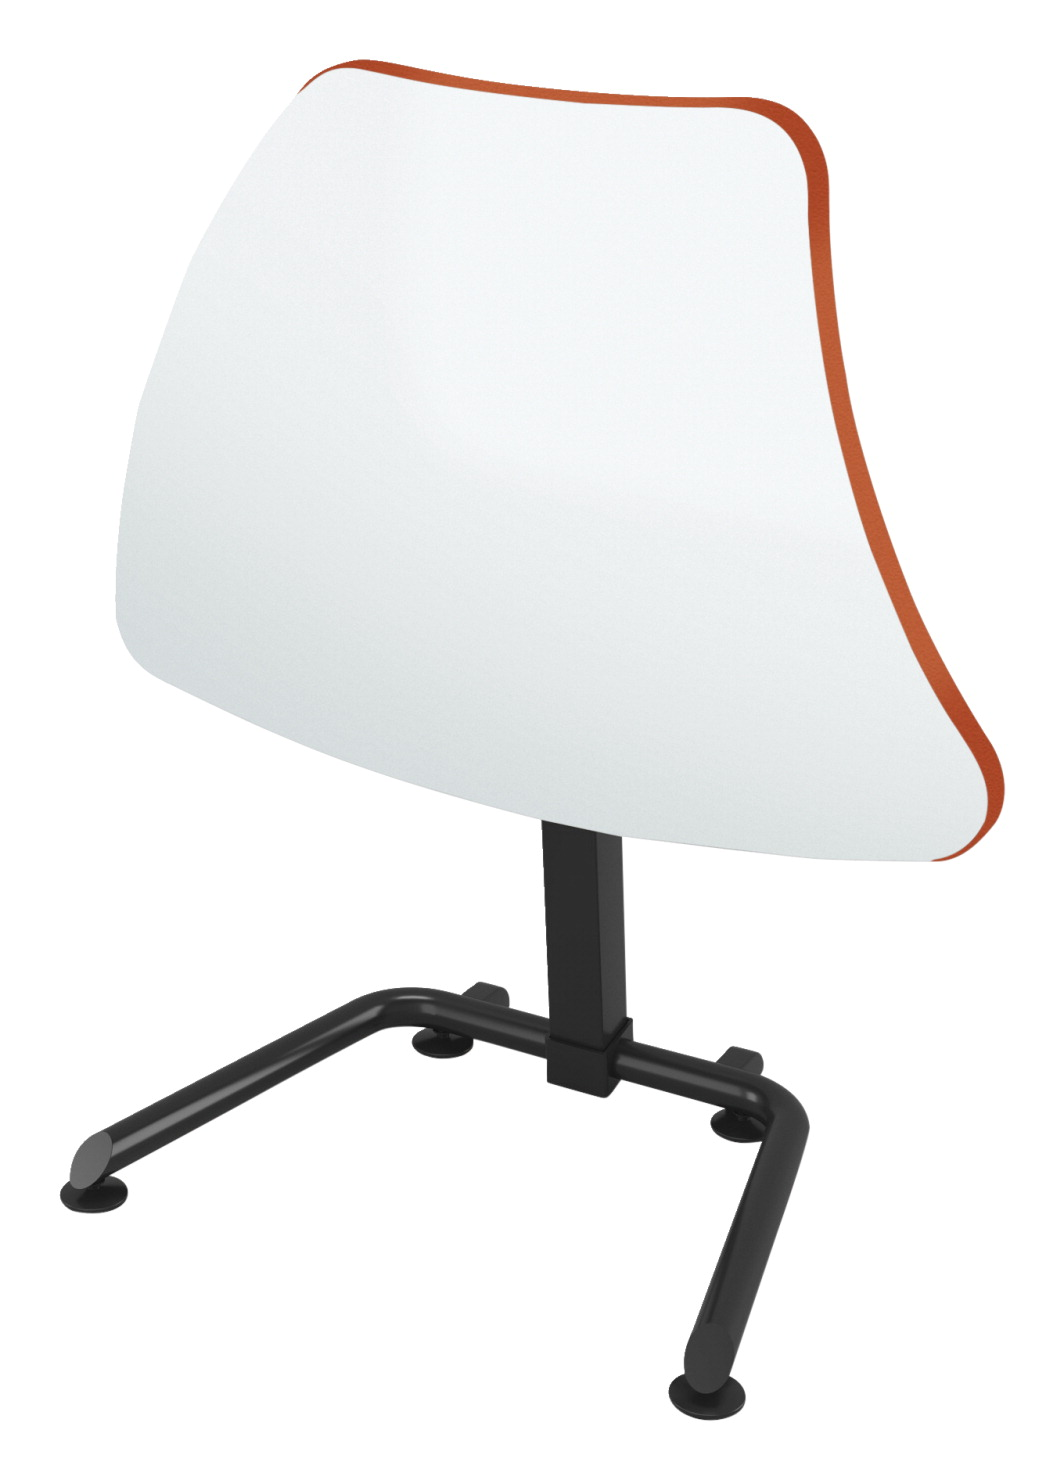 Classroom Select Affinity Height Adjustable Tilt-N-Nest Desk with Foot Pedal, Markerboard Top, Various Options